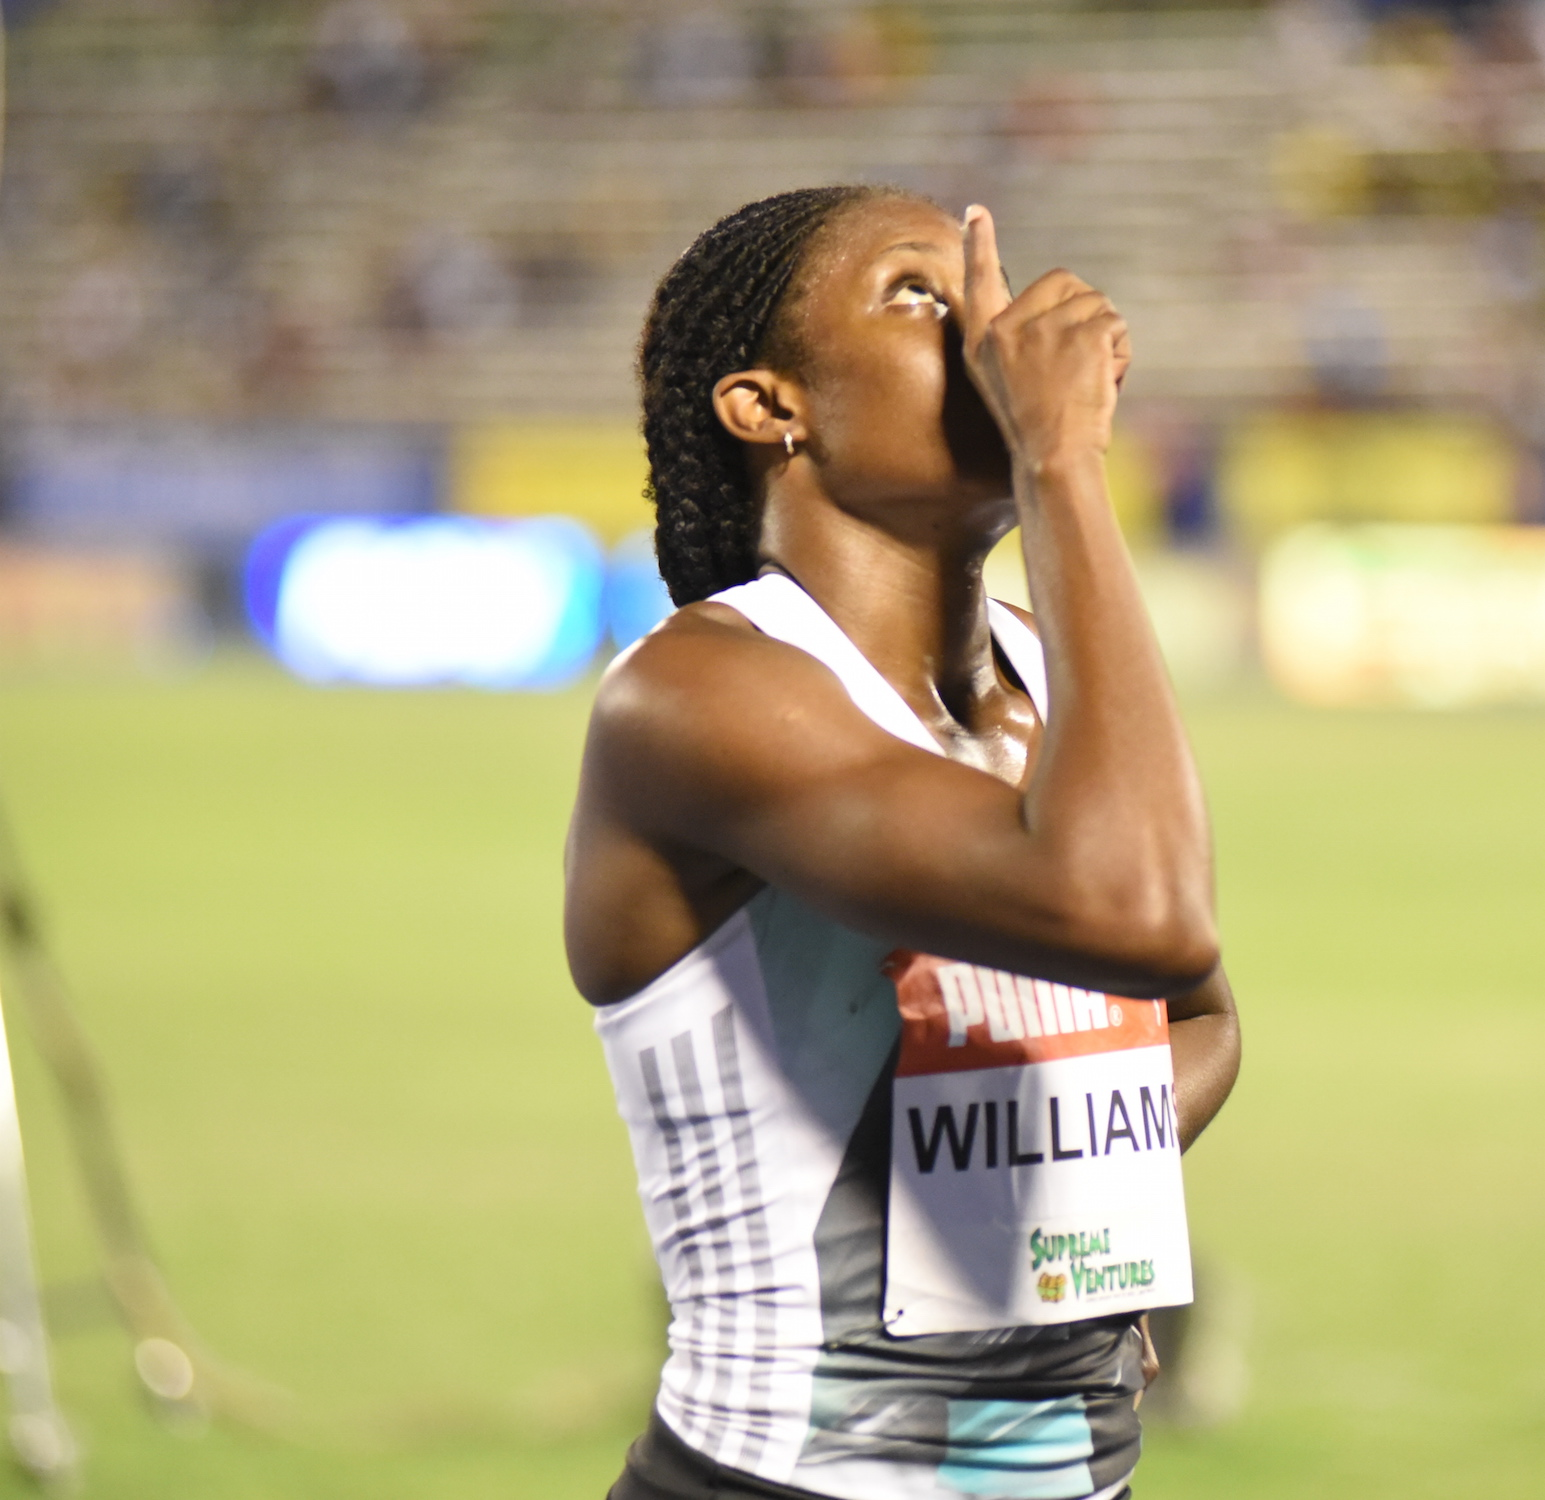 Danielle Williams wins at Former world champion Danielle Williams was a winner at Sunday's (15 Aug) Ed Murphey Classic held in Memphis, USA.